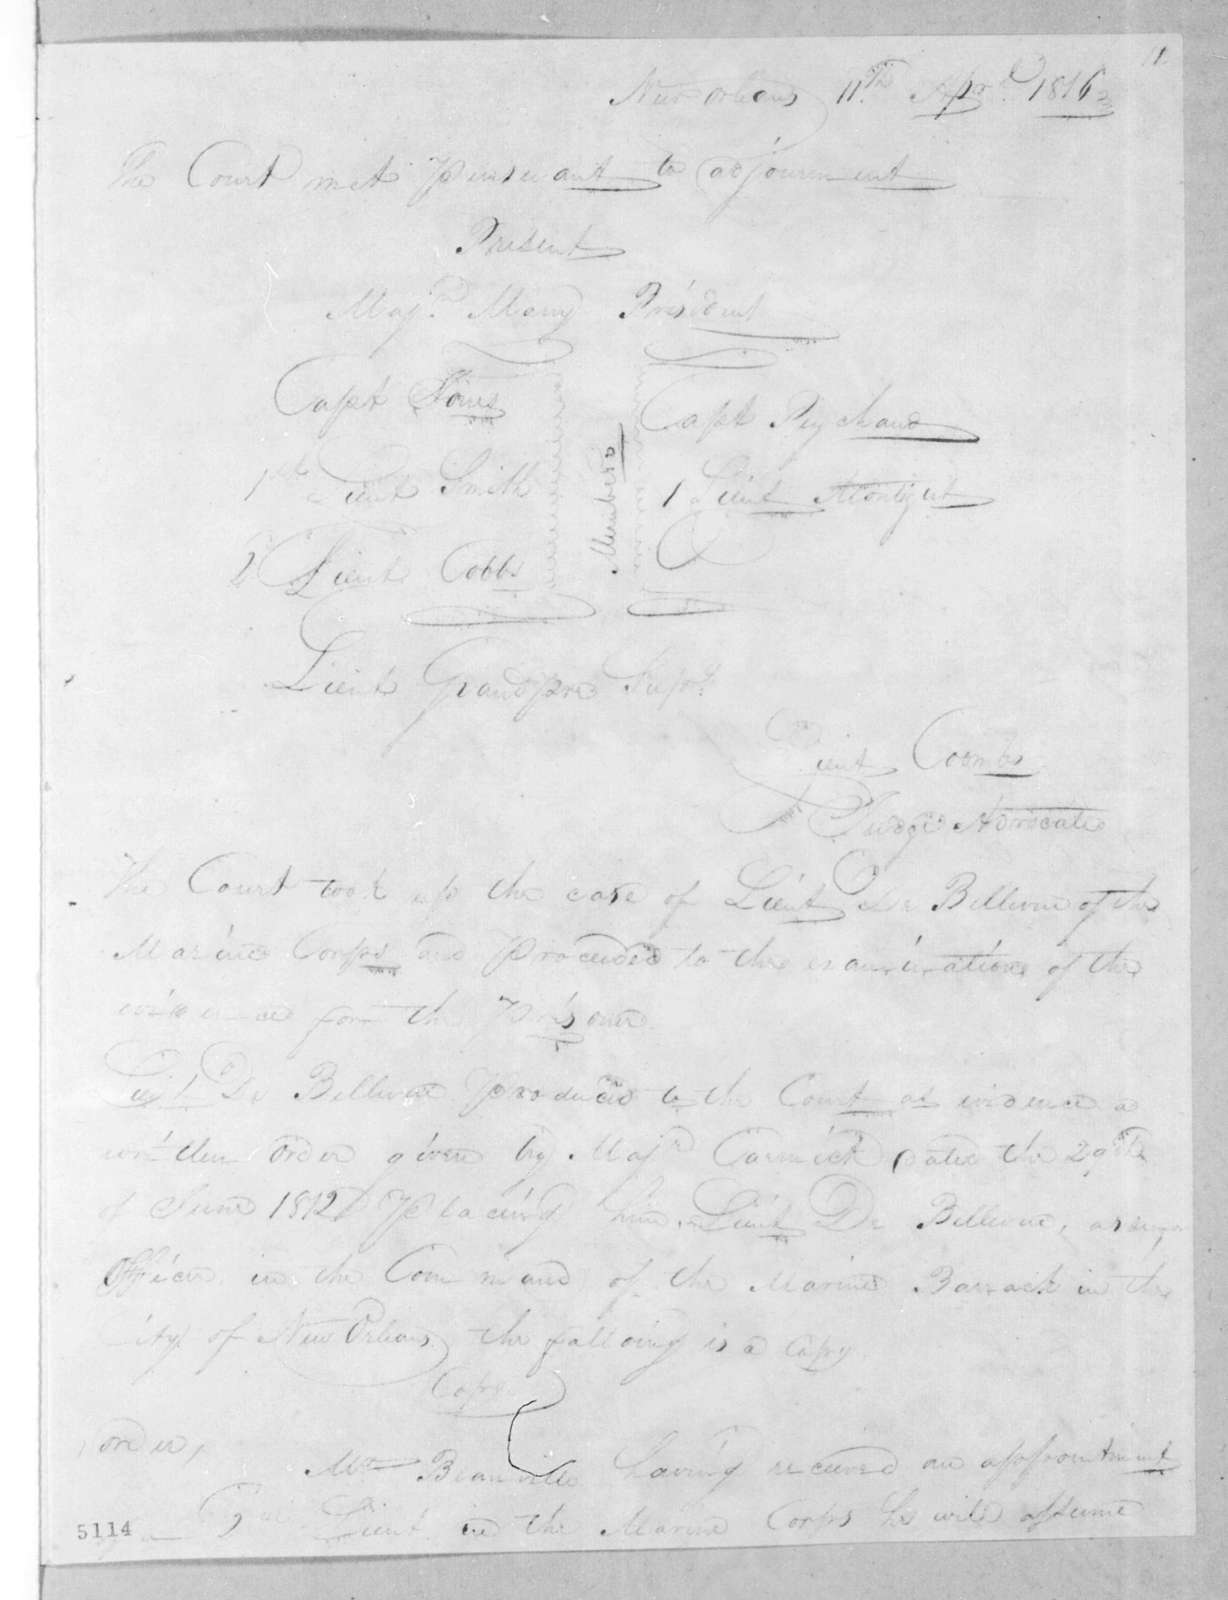 Court martial proceedings from New Orleans Army Headquarters, April 18, 1816